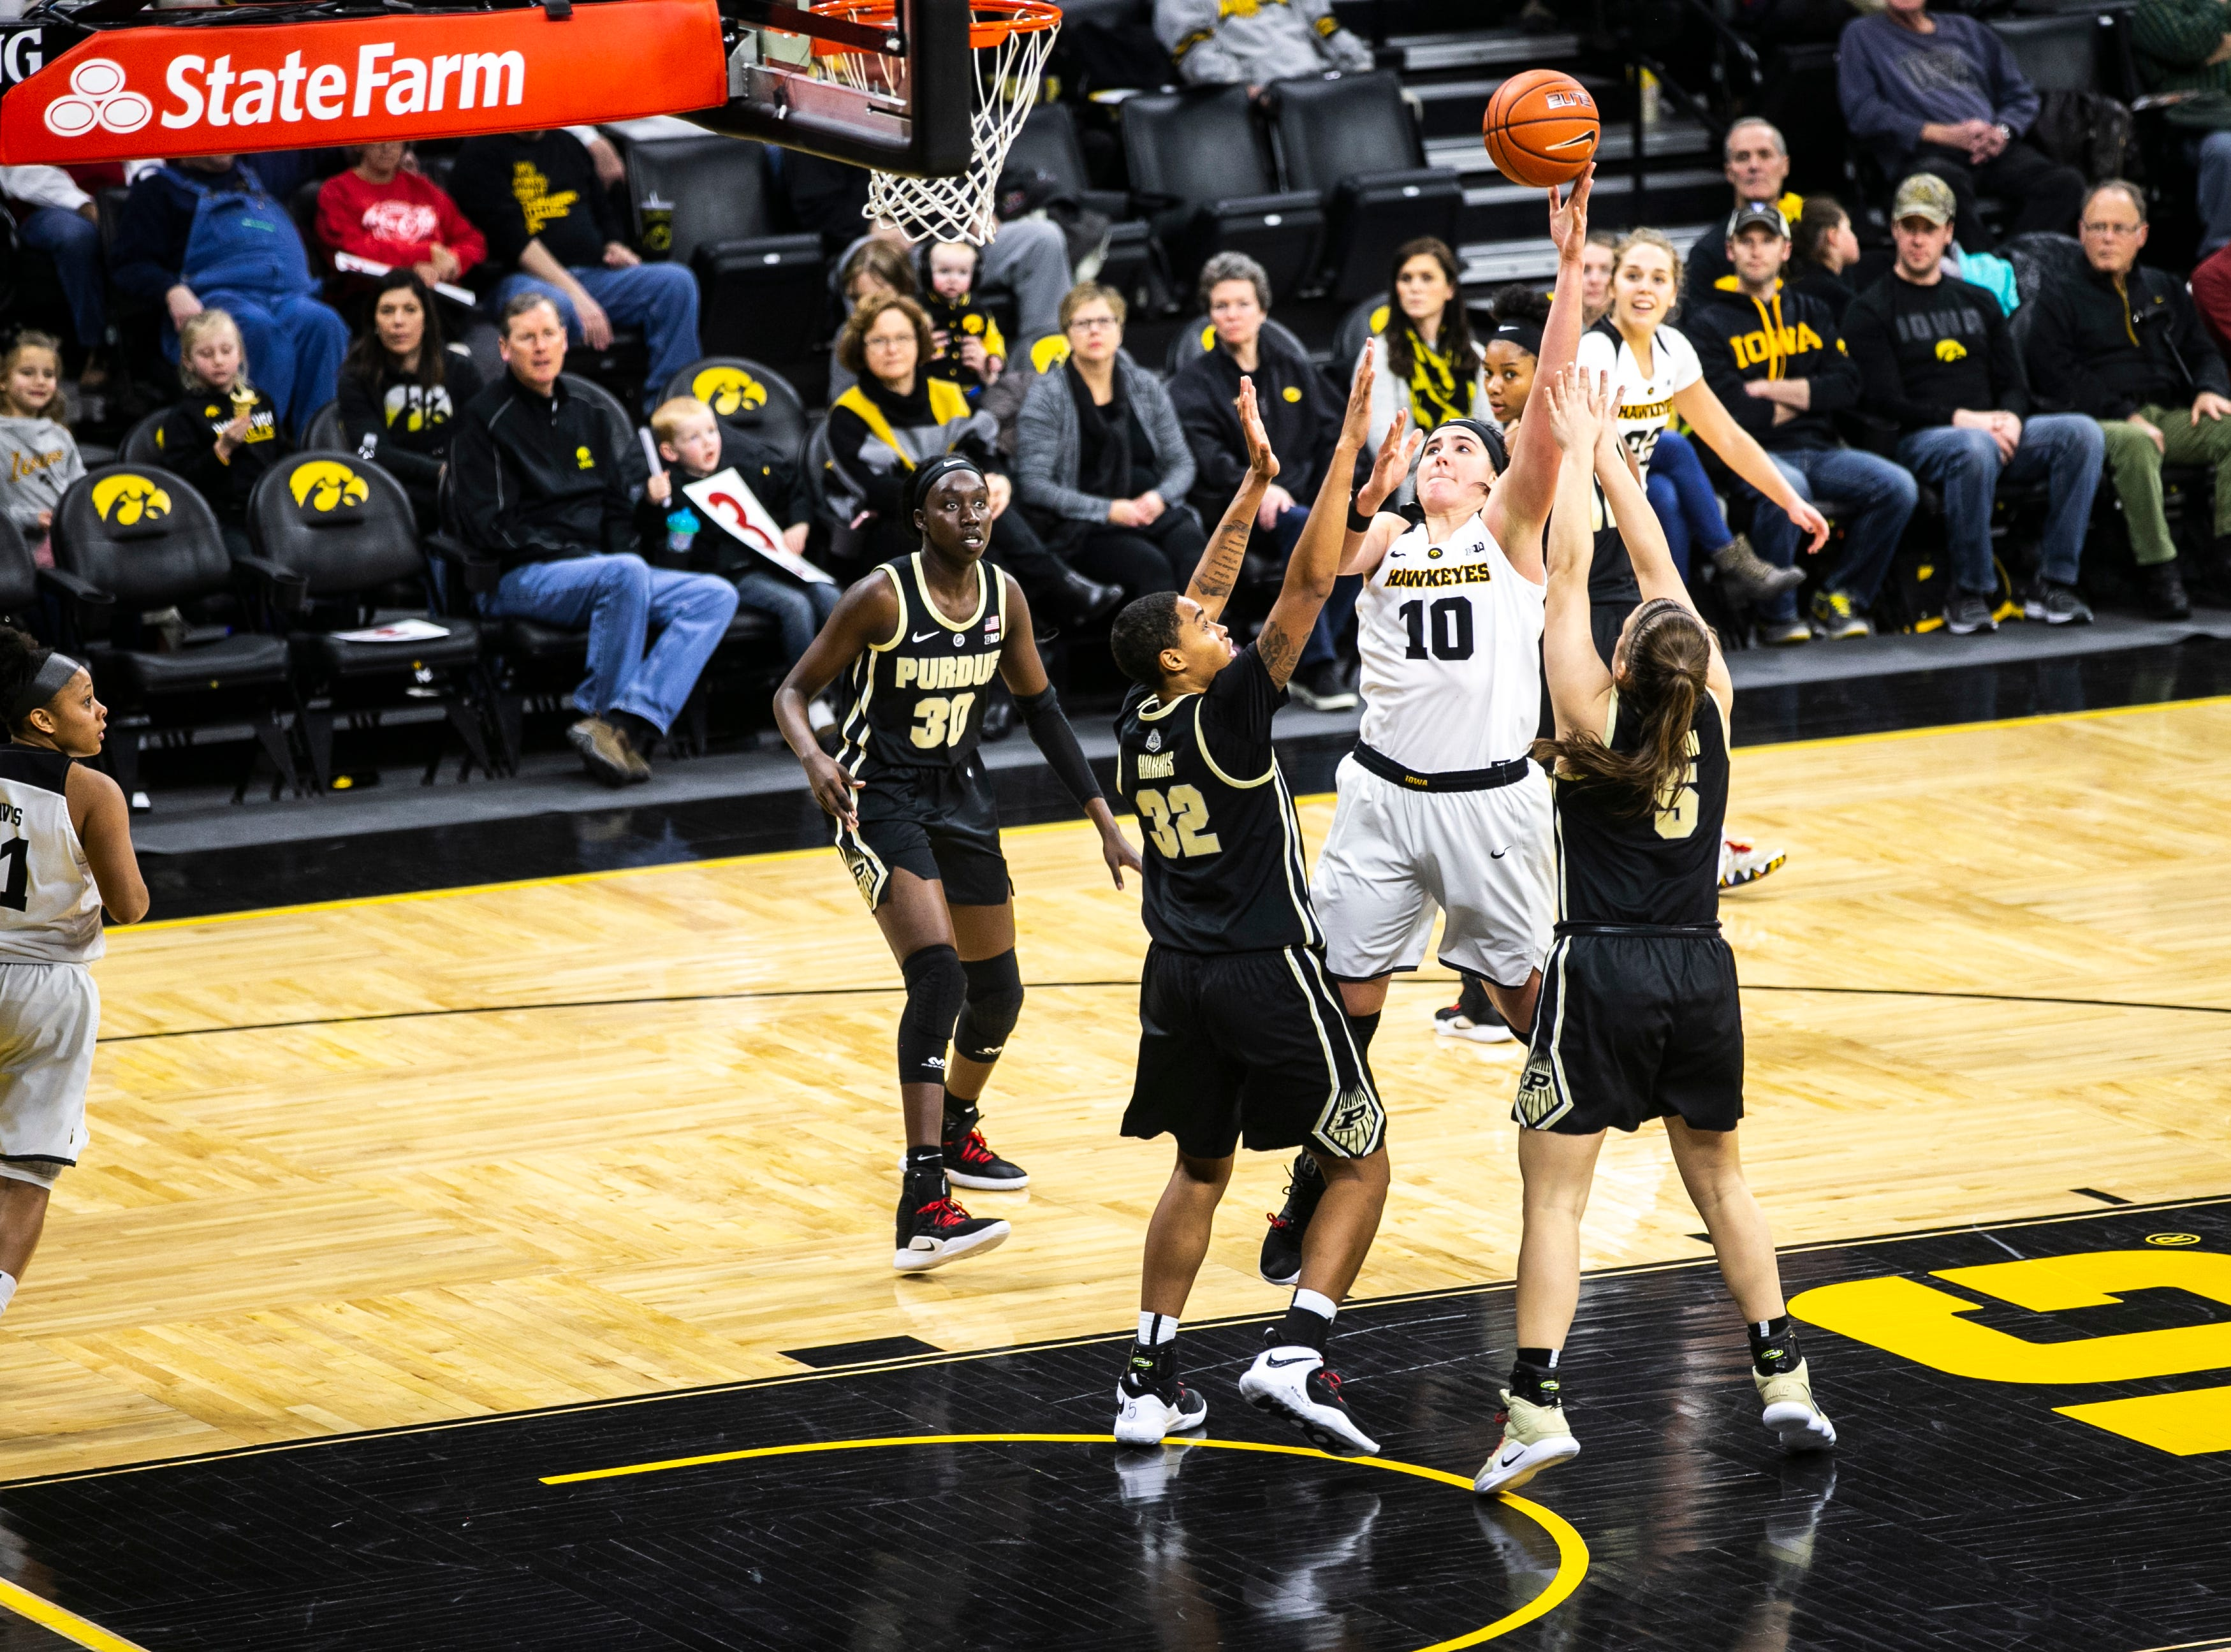 Iowa center Megan Gustafson (10) attempts a basket in the paint during a NCAA Big Ten Conference women's basketball game on Sunday, Jan. 27, 2019, at Carver-Hawkeye Arena in Iowa City, Iowa.